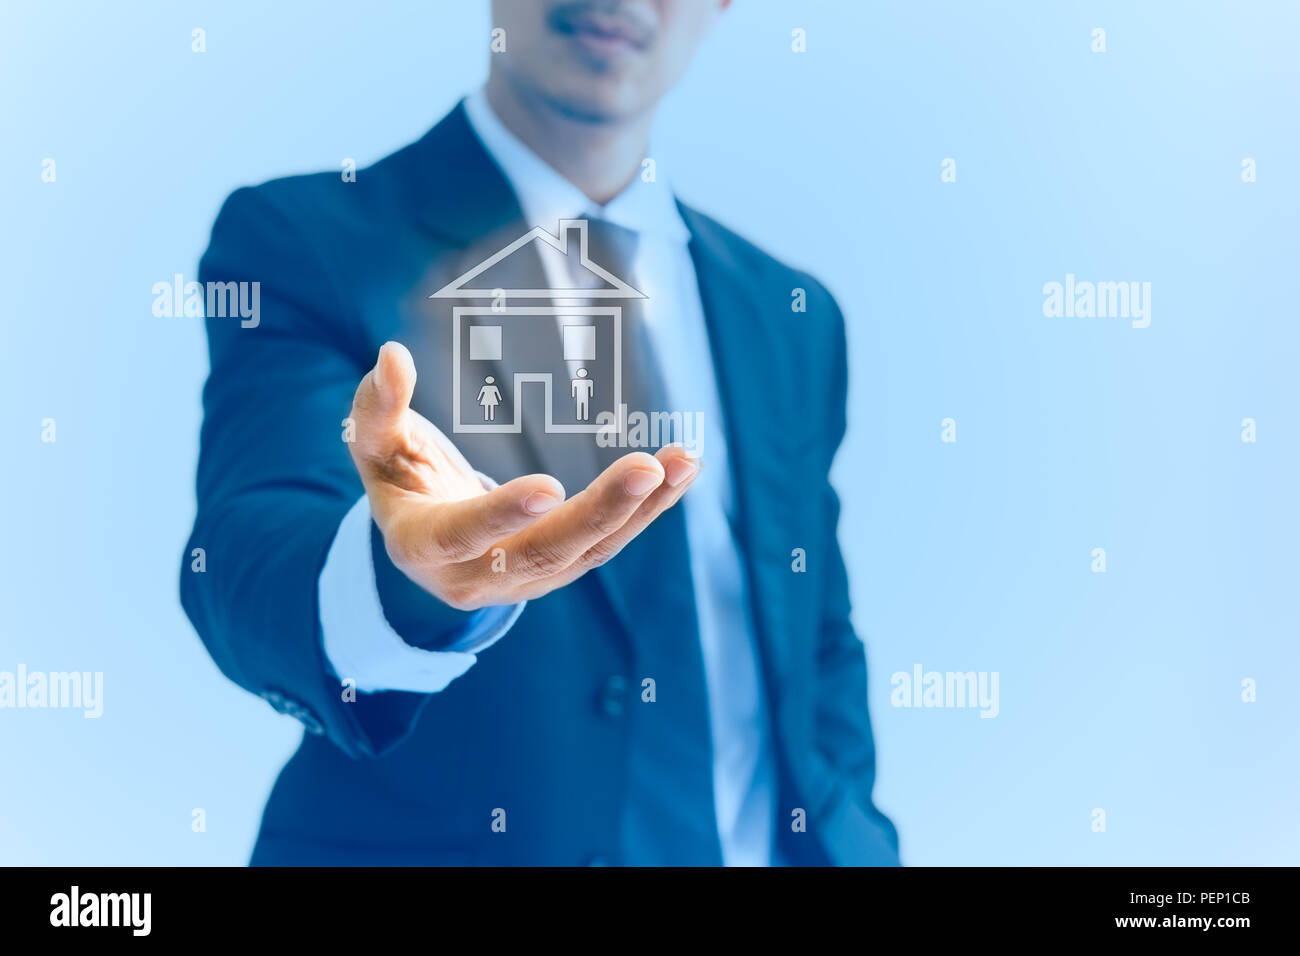 Conceptual businessman hand holding a house with woman and men icon in blue background. - Stock Image